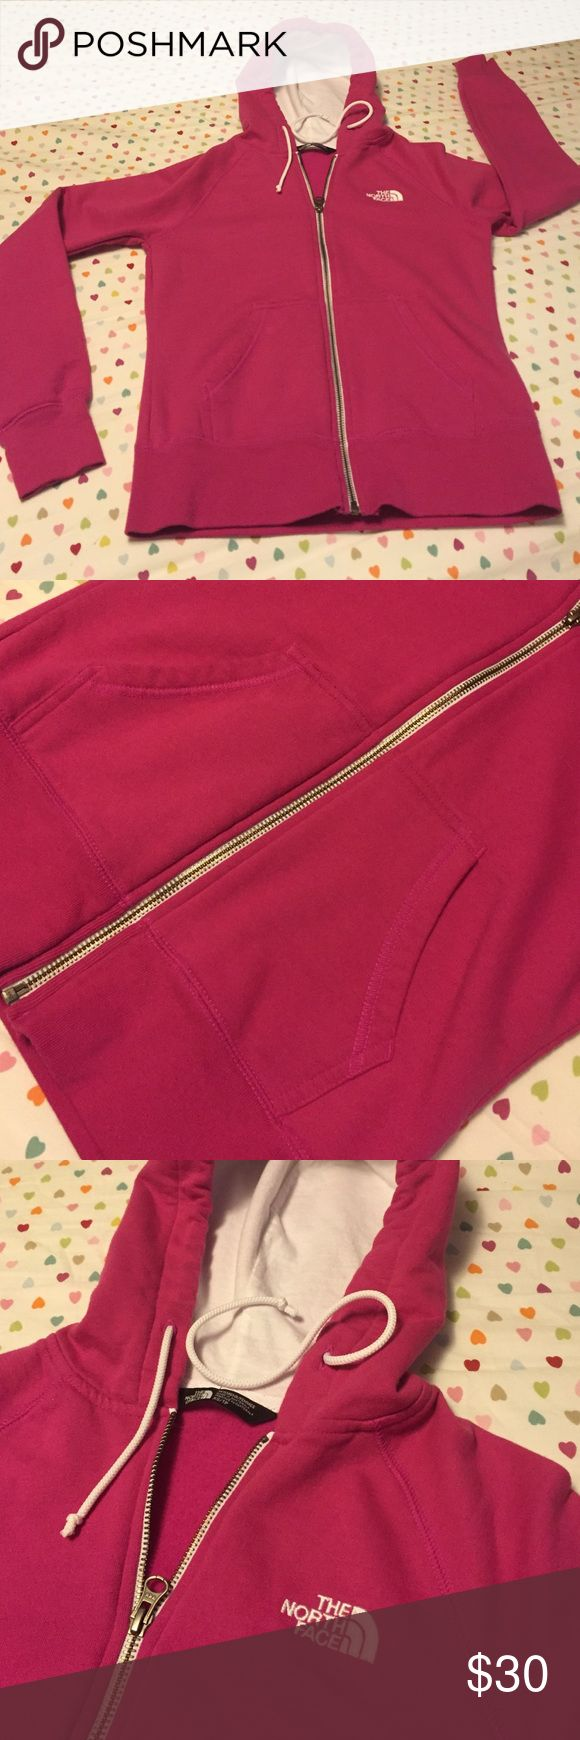 XS pink women's hoodie Good condition zippered hoodie 2 front pockets. Logo on front and back. The North Face Jackets & Coats